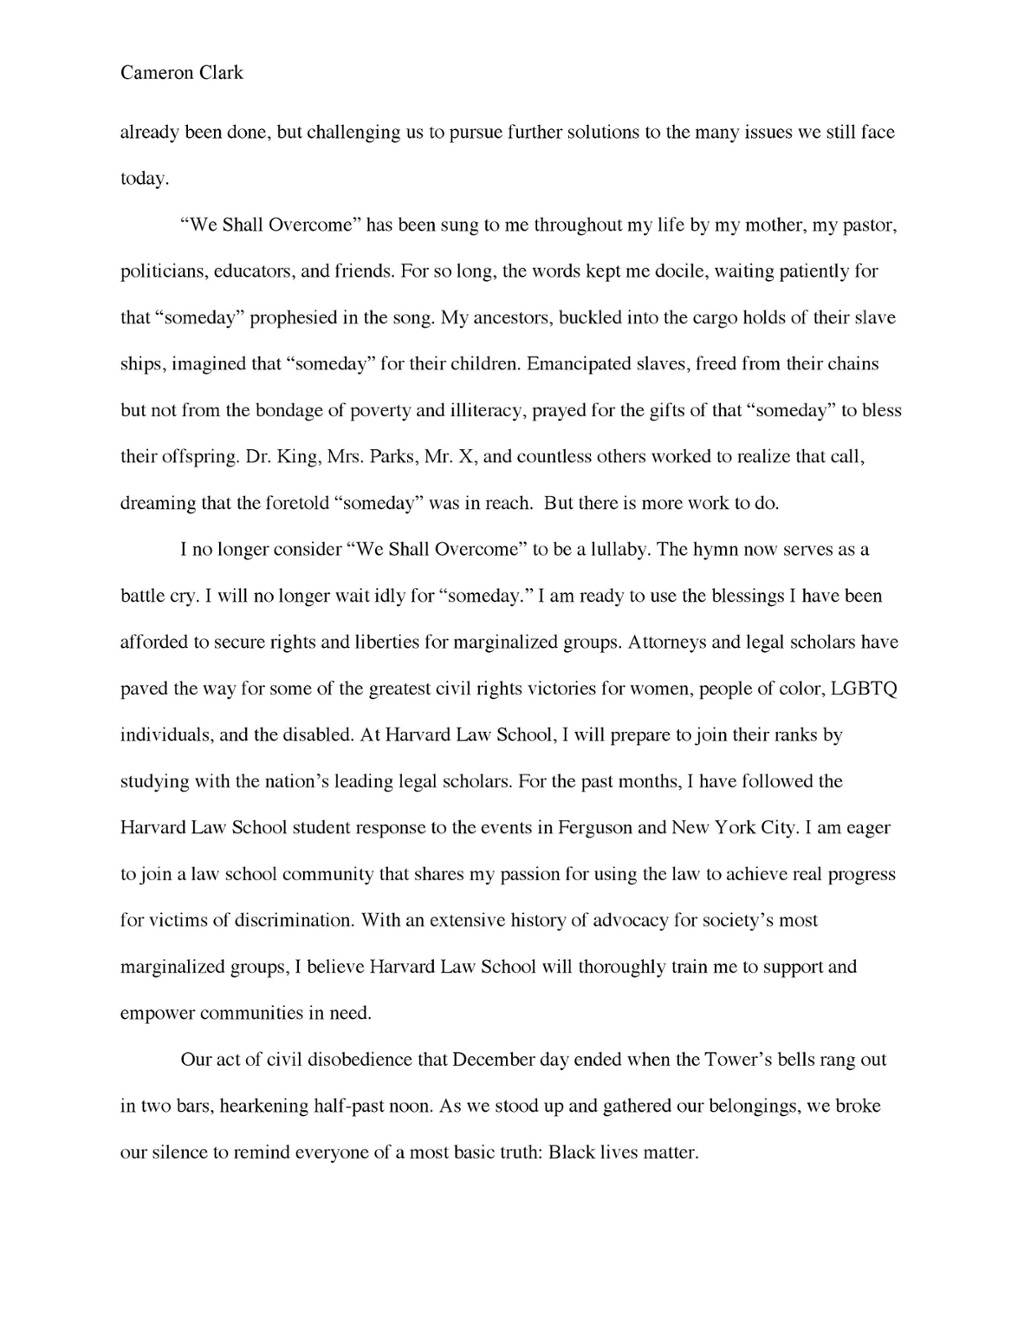 Stand And Deliver Critical Analysis Essay